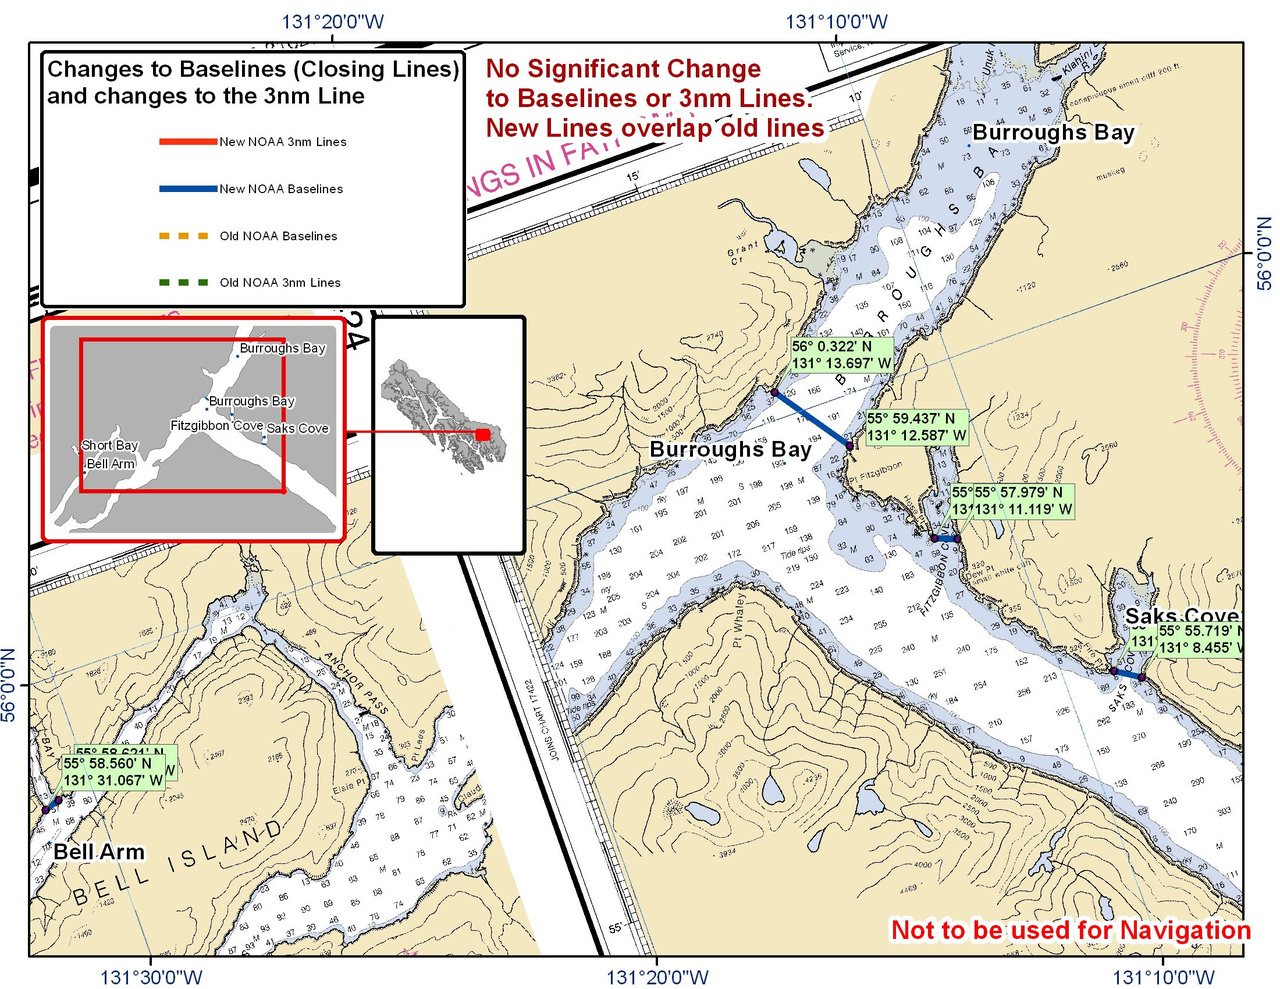 Chart for Burroughs Bay and the Surrounding Area